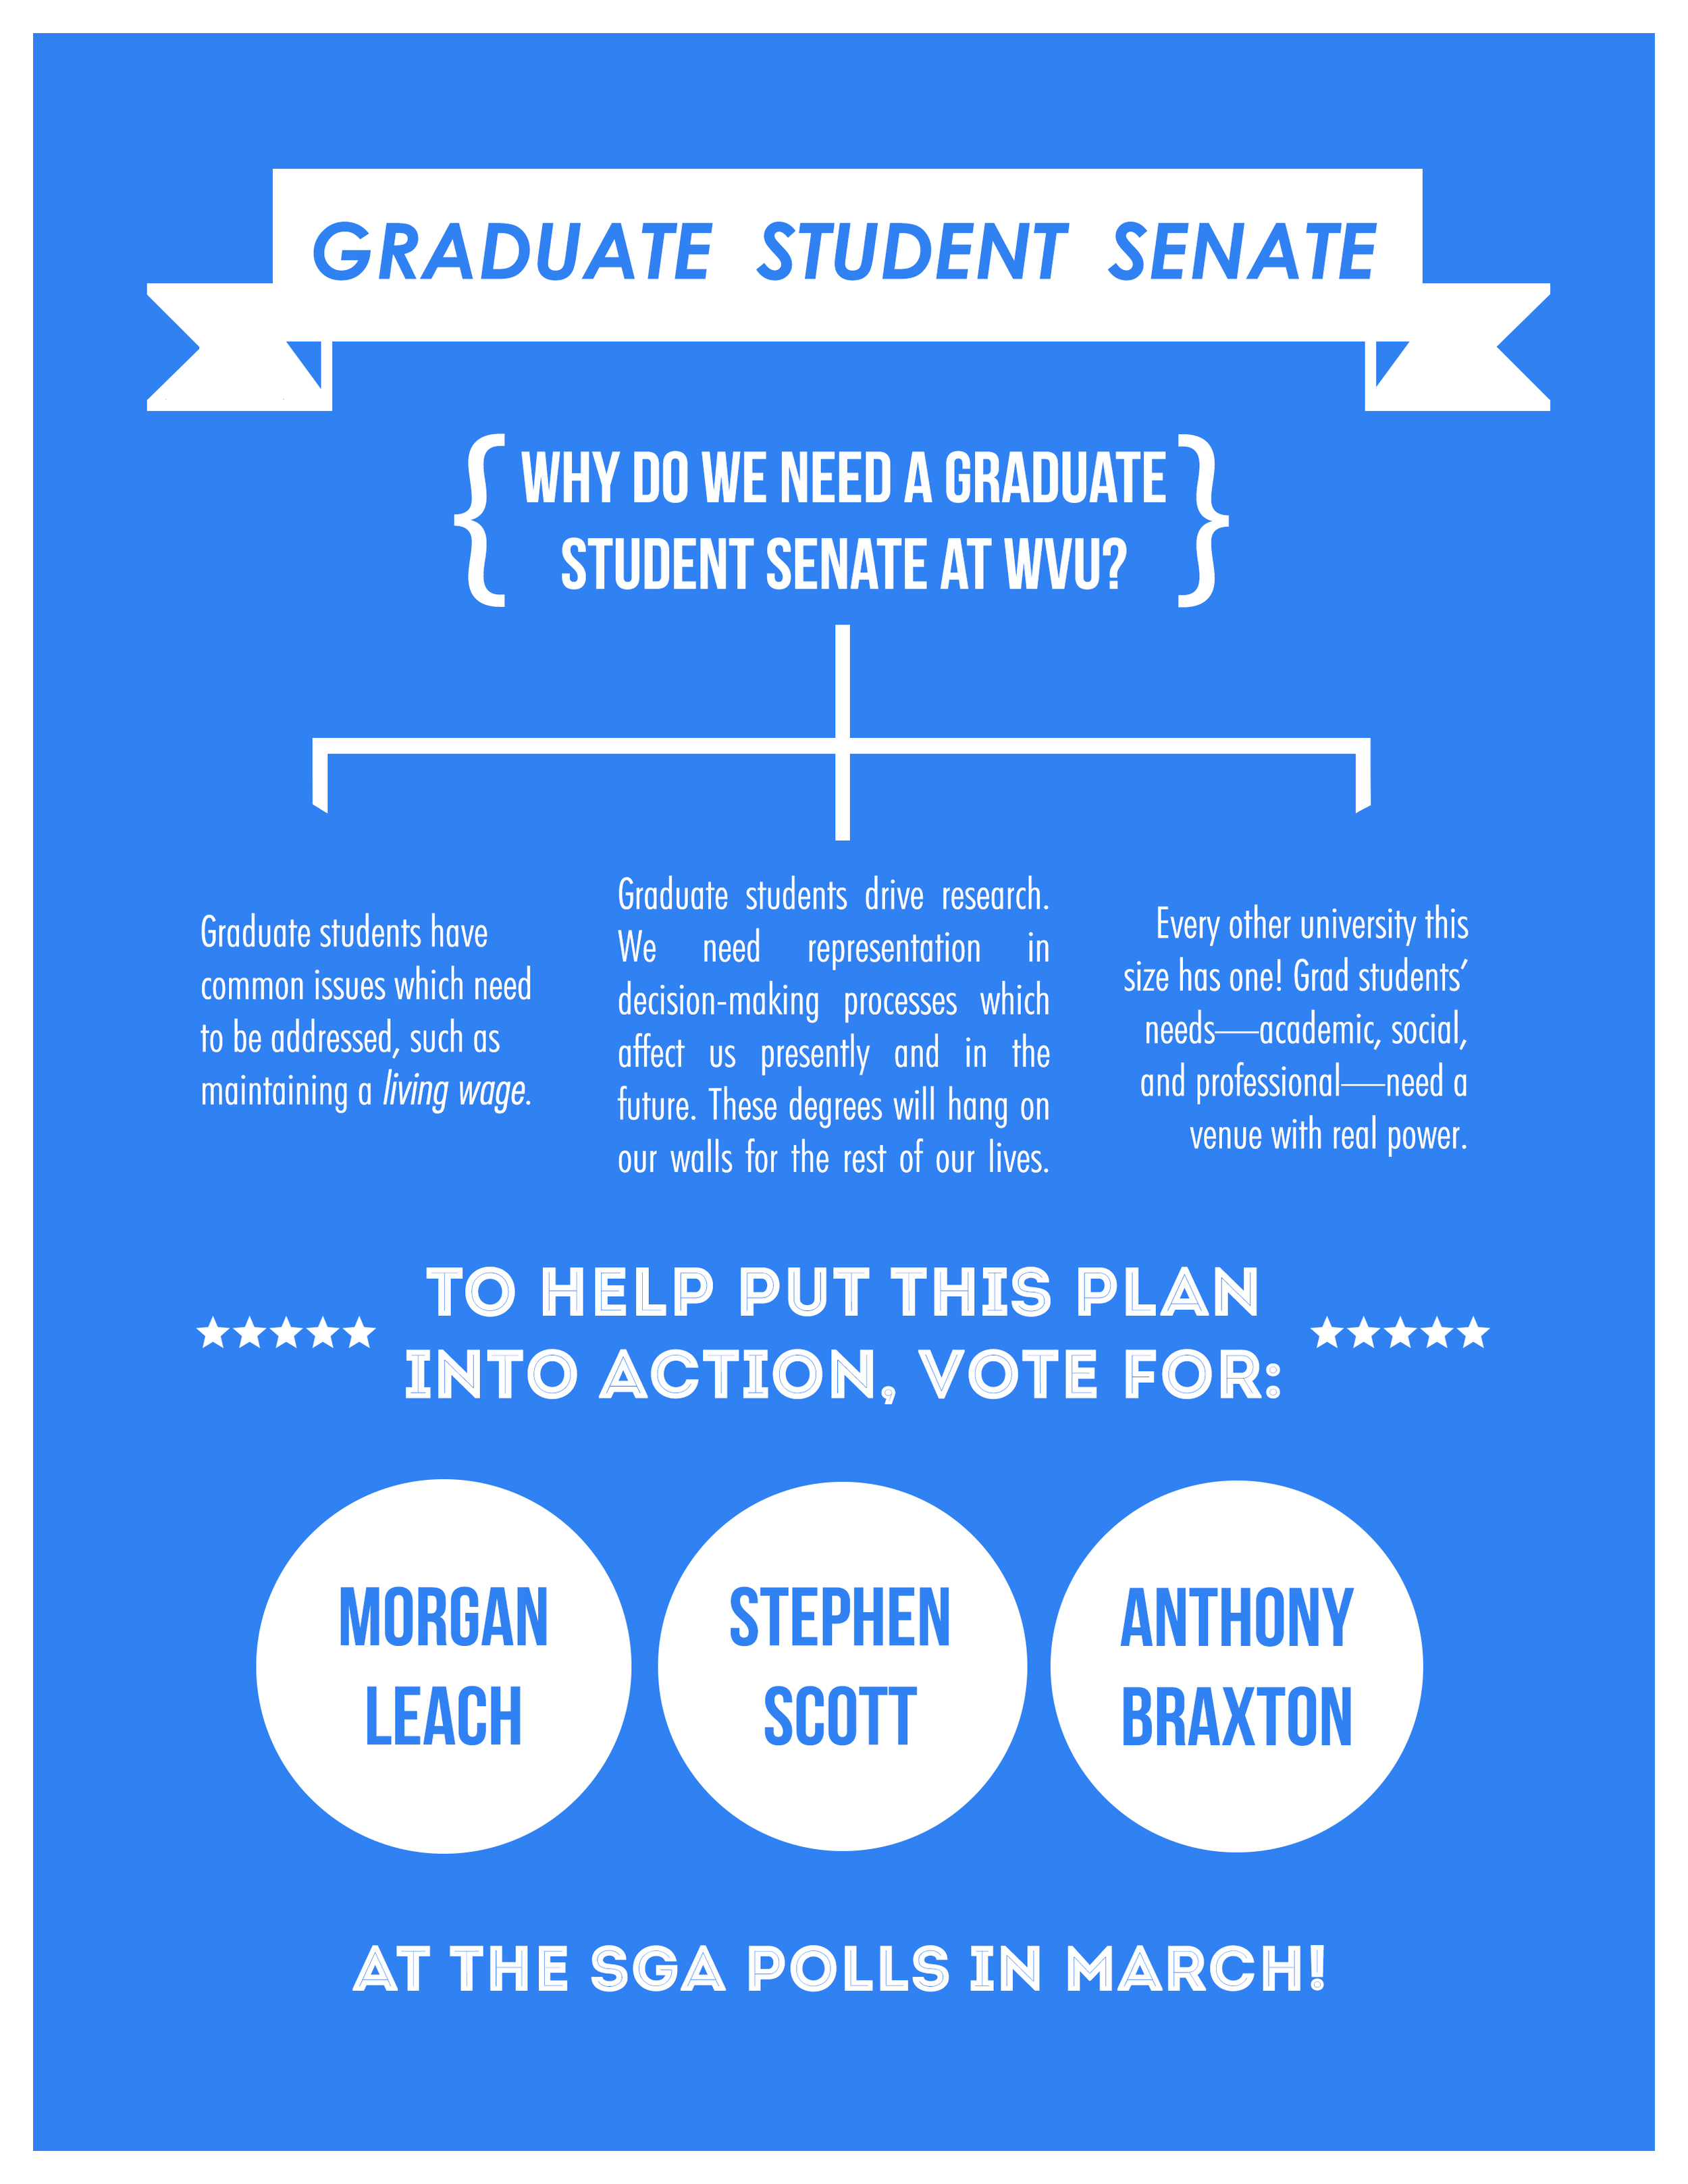 WVU_Graduate_Senate_Flyer_Color_Names.jpg